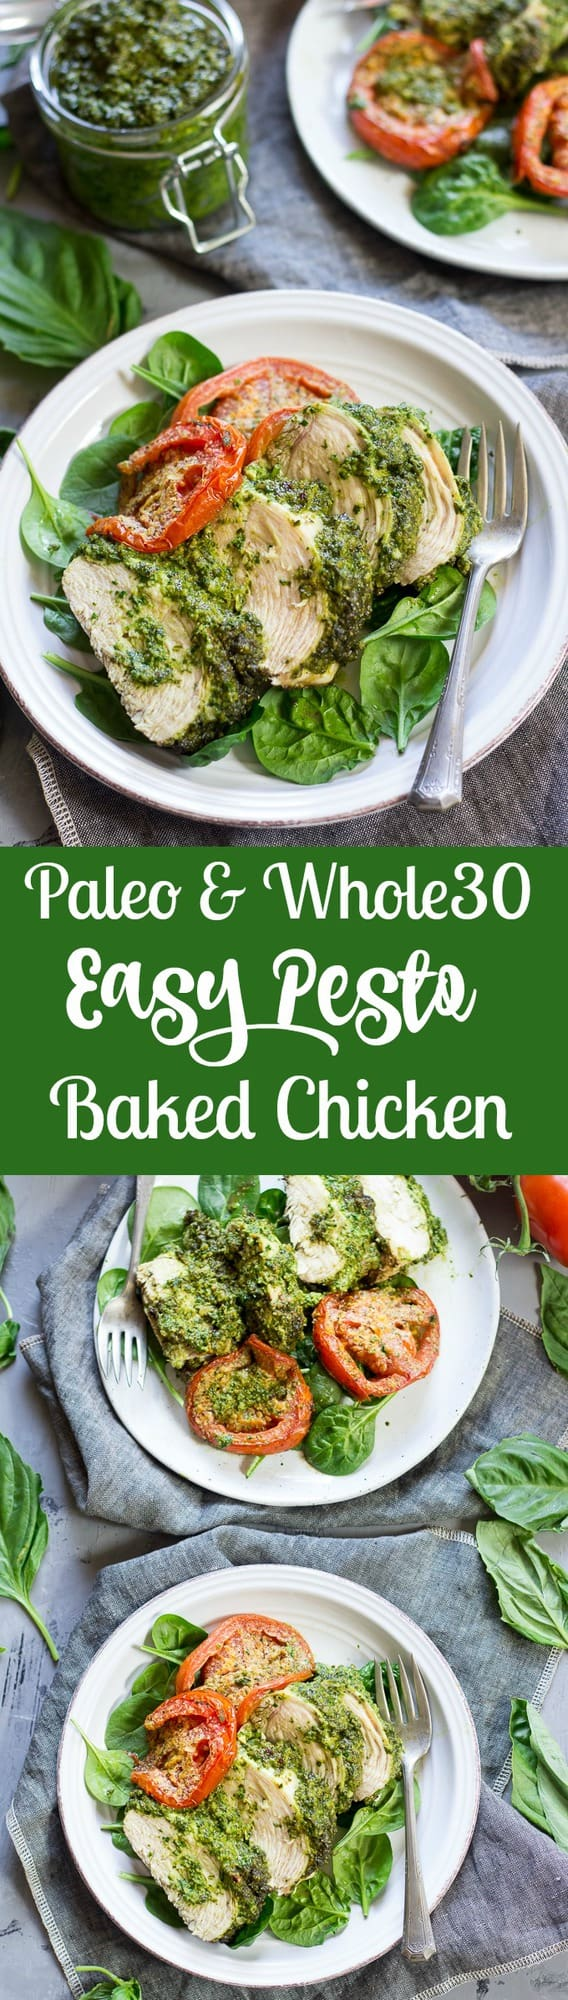 paleo-whole30-easy-pesto-baked-chicken